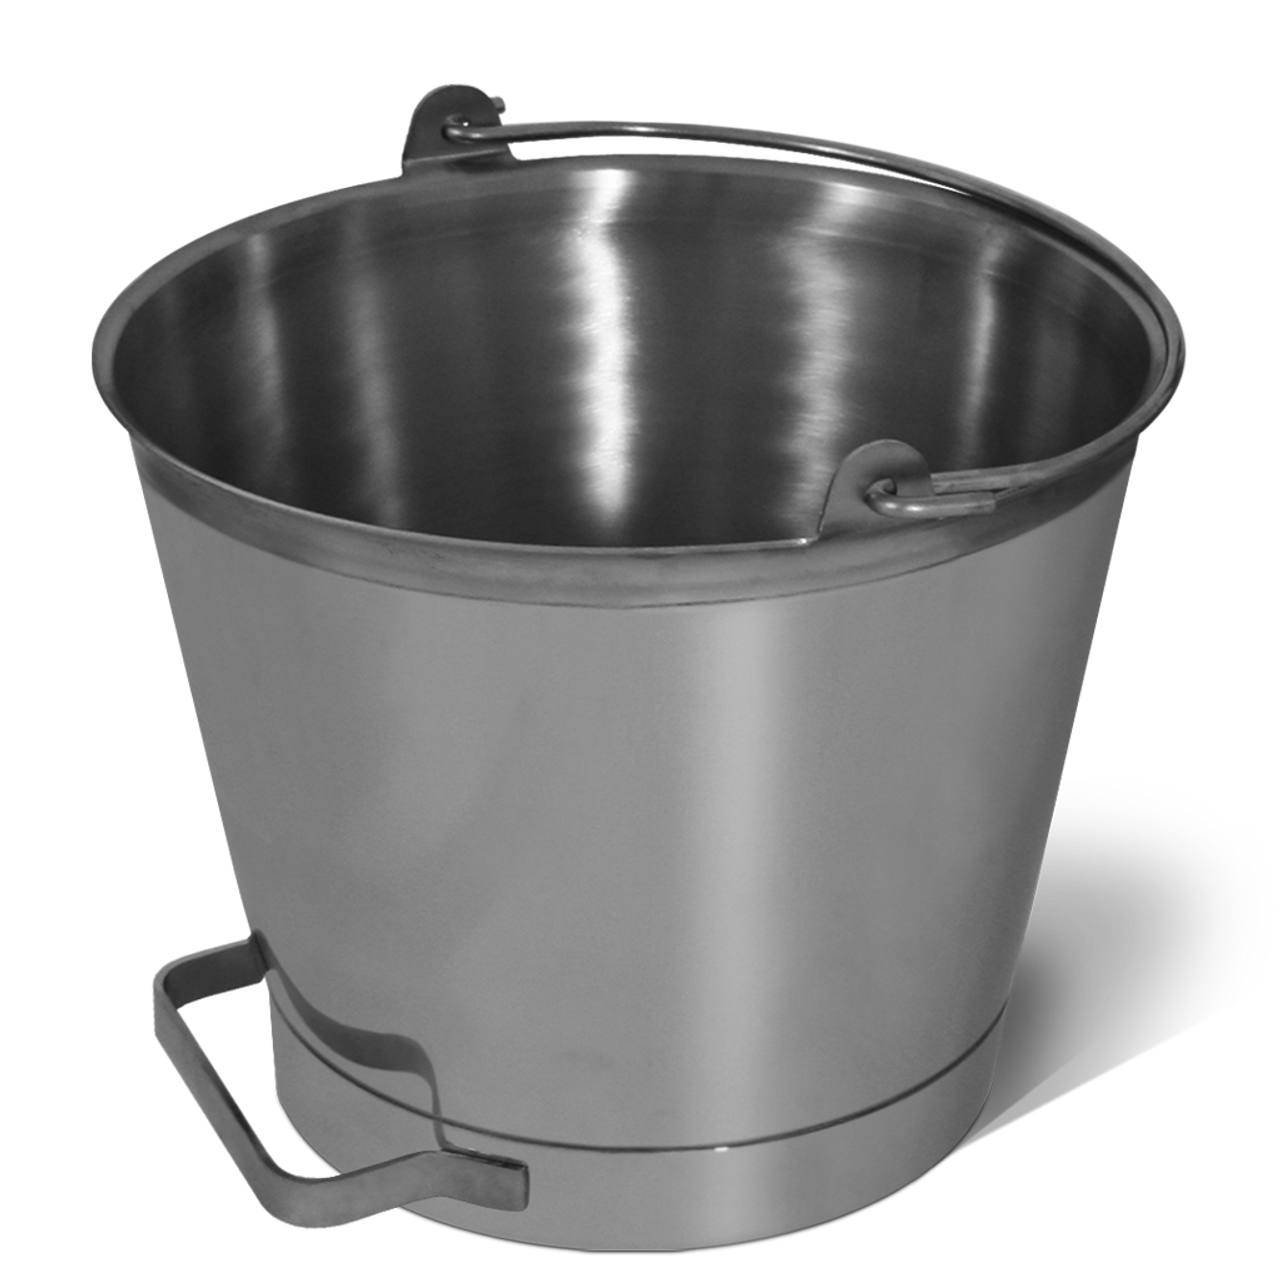 SANI LAV - 13Qt Stainless Steel Pail w/ Handle - USDA and FDA Approved